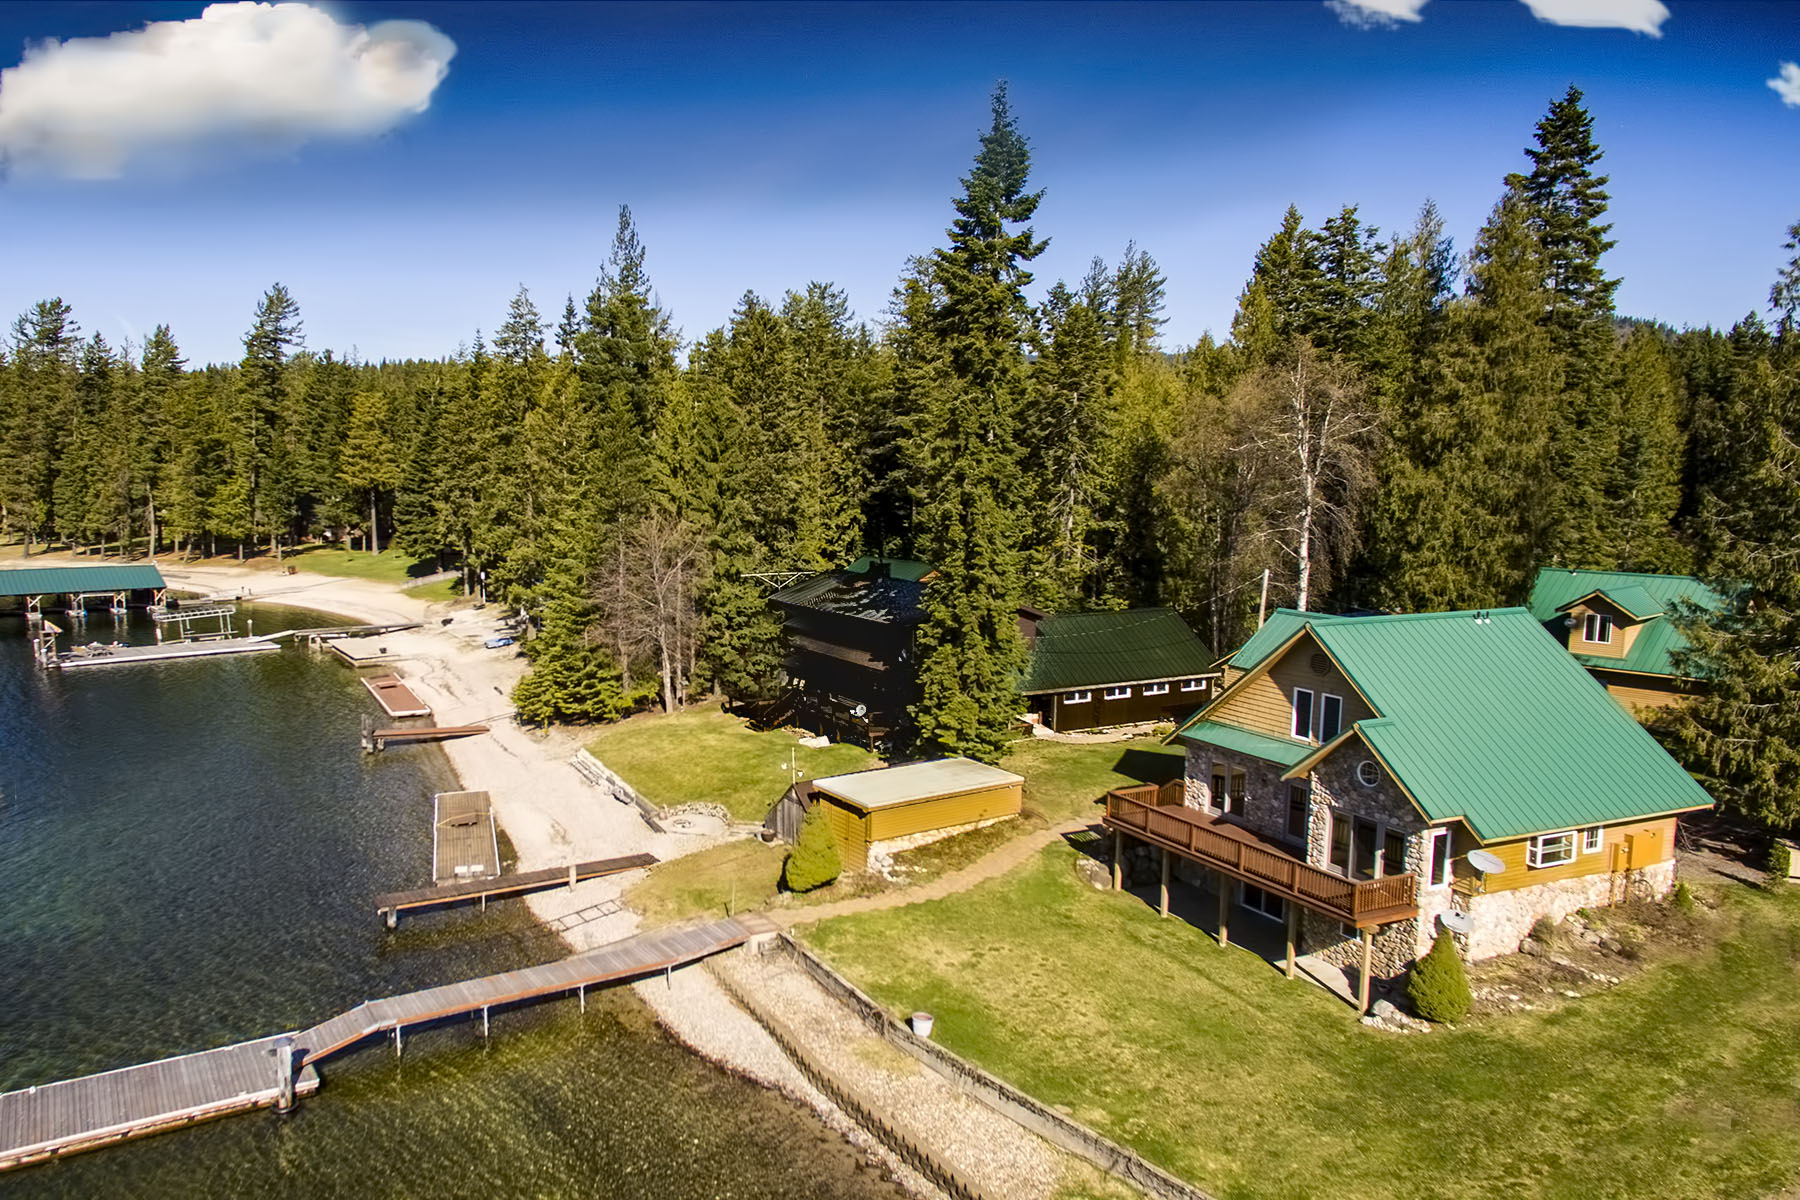 Casa Unifamiliar por un Venta en 5 Ac Reeder Bay Lot in Nordman, ID 16 Sunrise Lane Nordman, Idaho, 83848 Estados Unidos